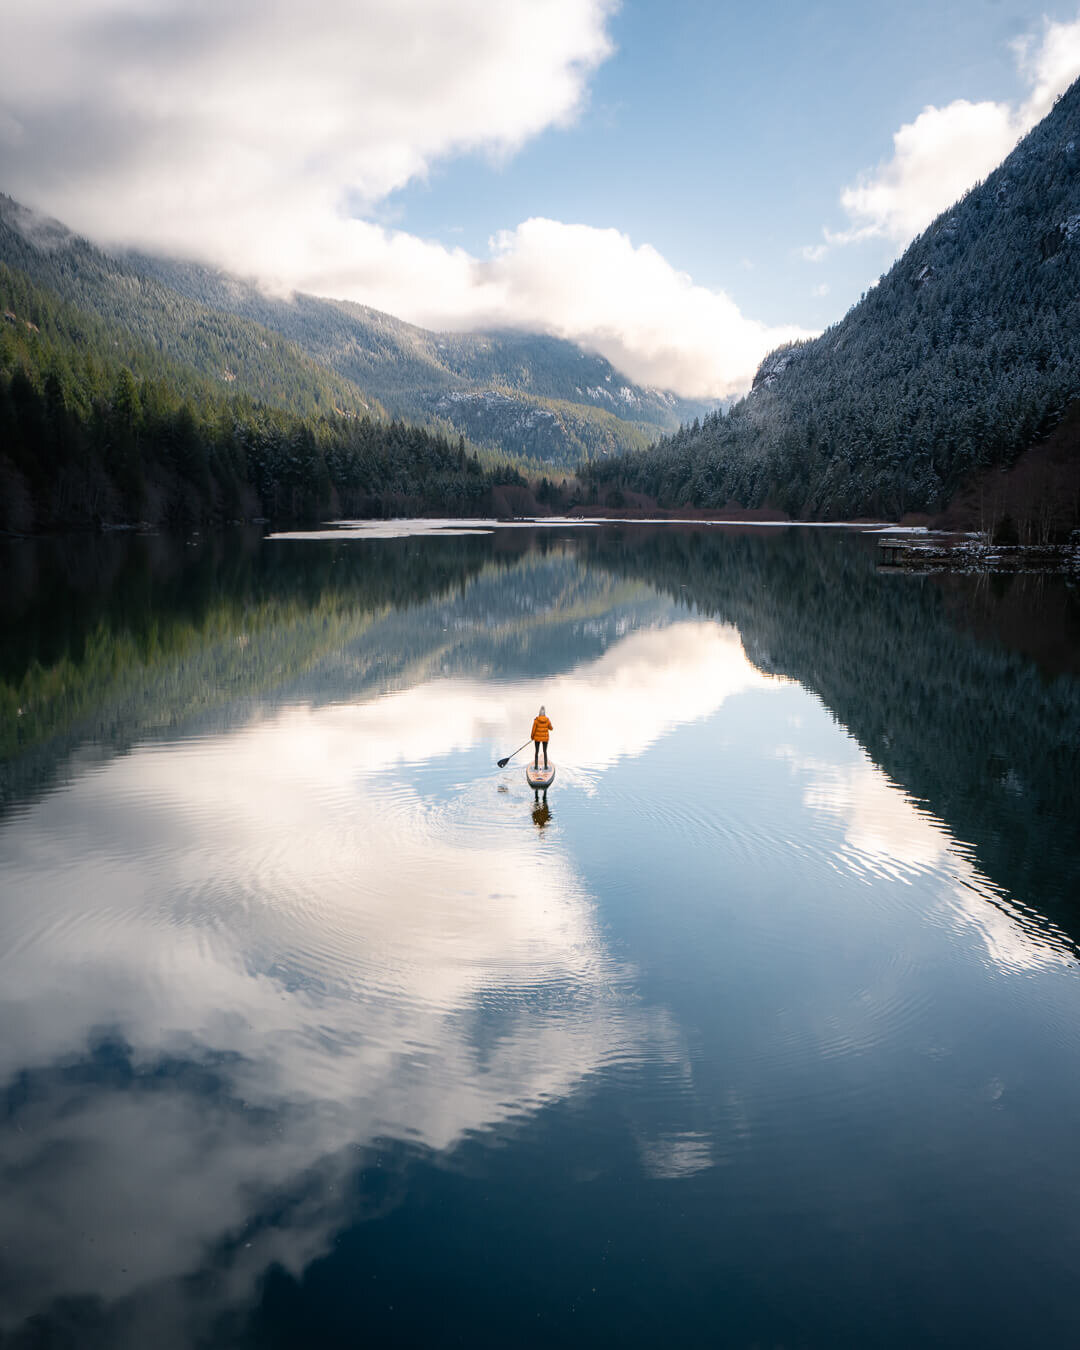 Stand-Up Paddle Boarding on Diablo Lake on a calm morning in January.